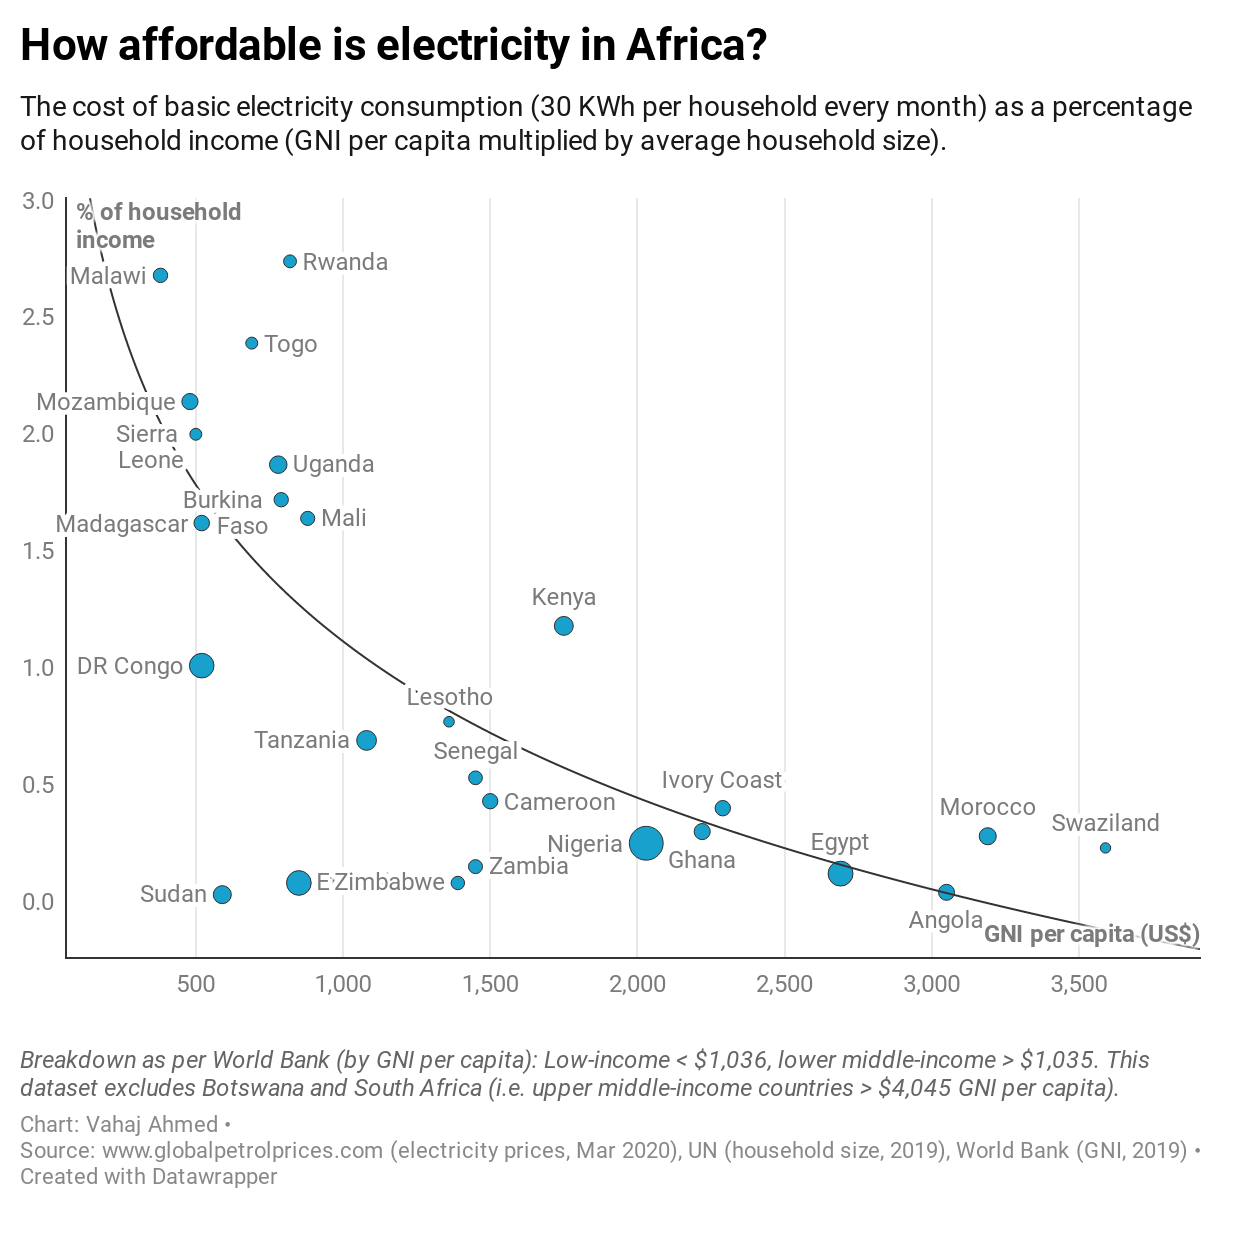 How affordable is electricity in Africa?